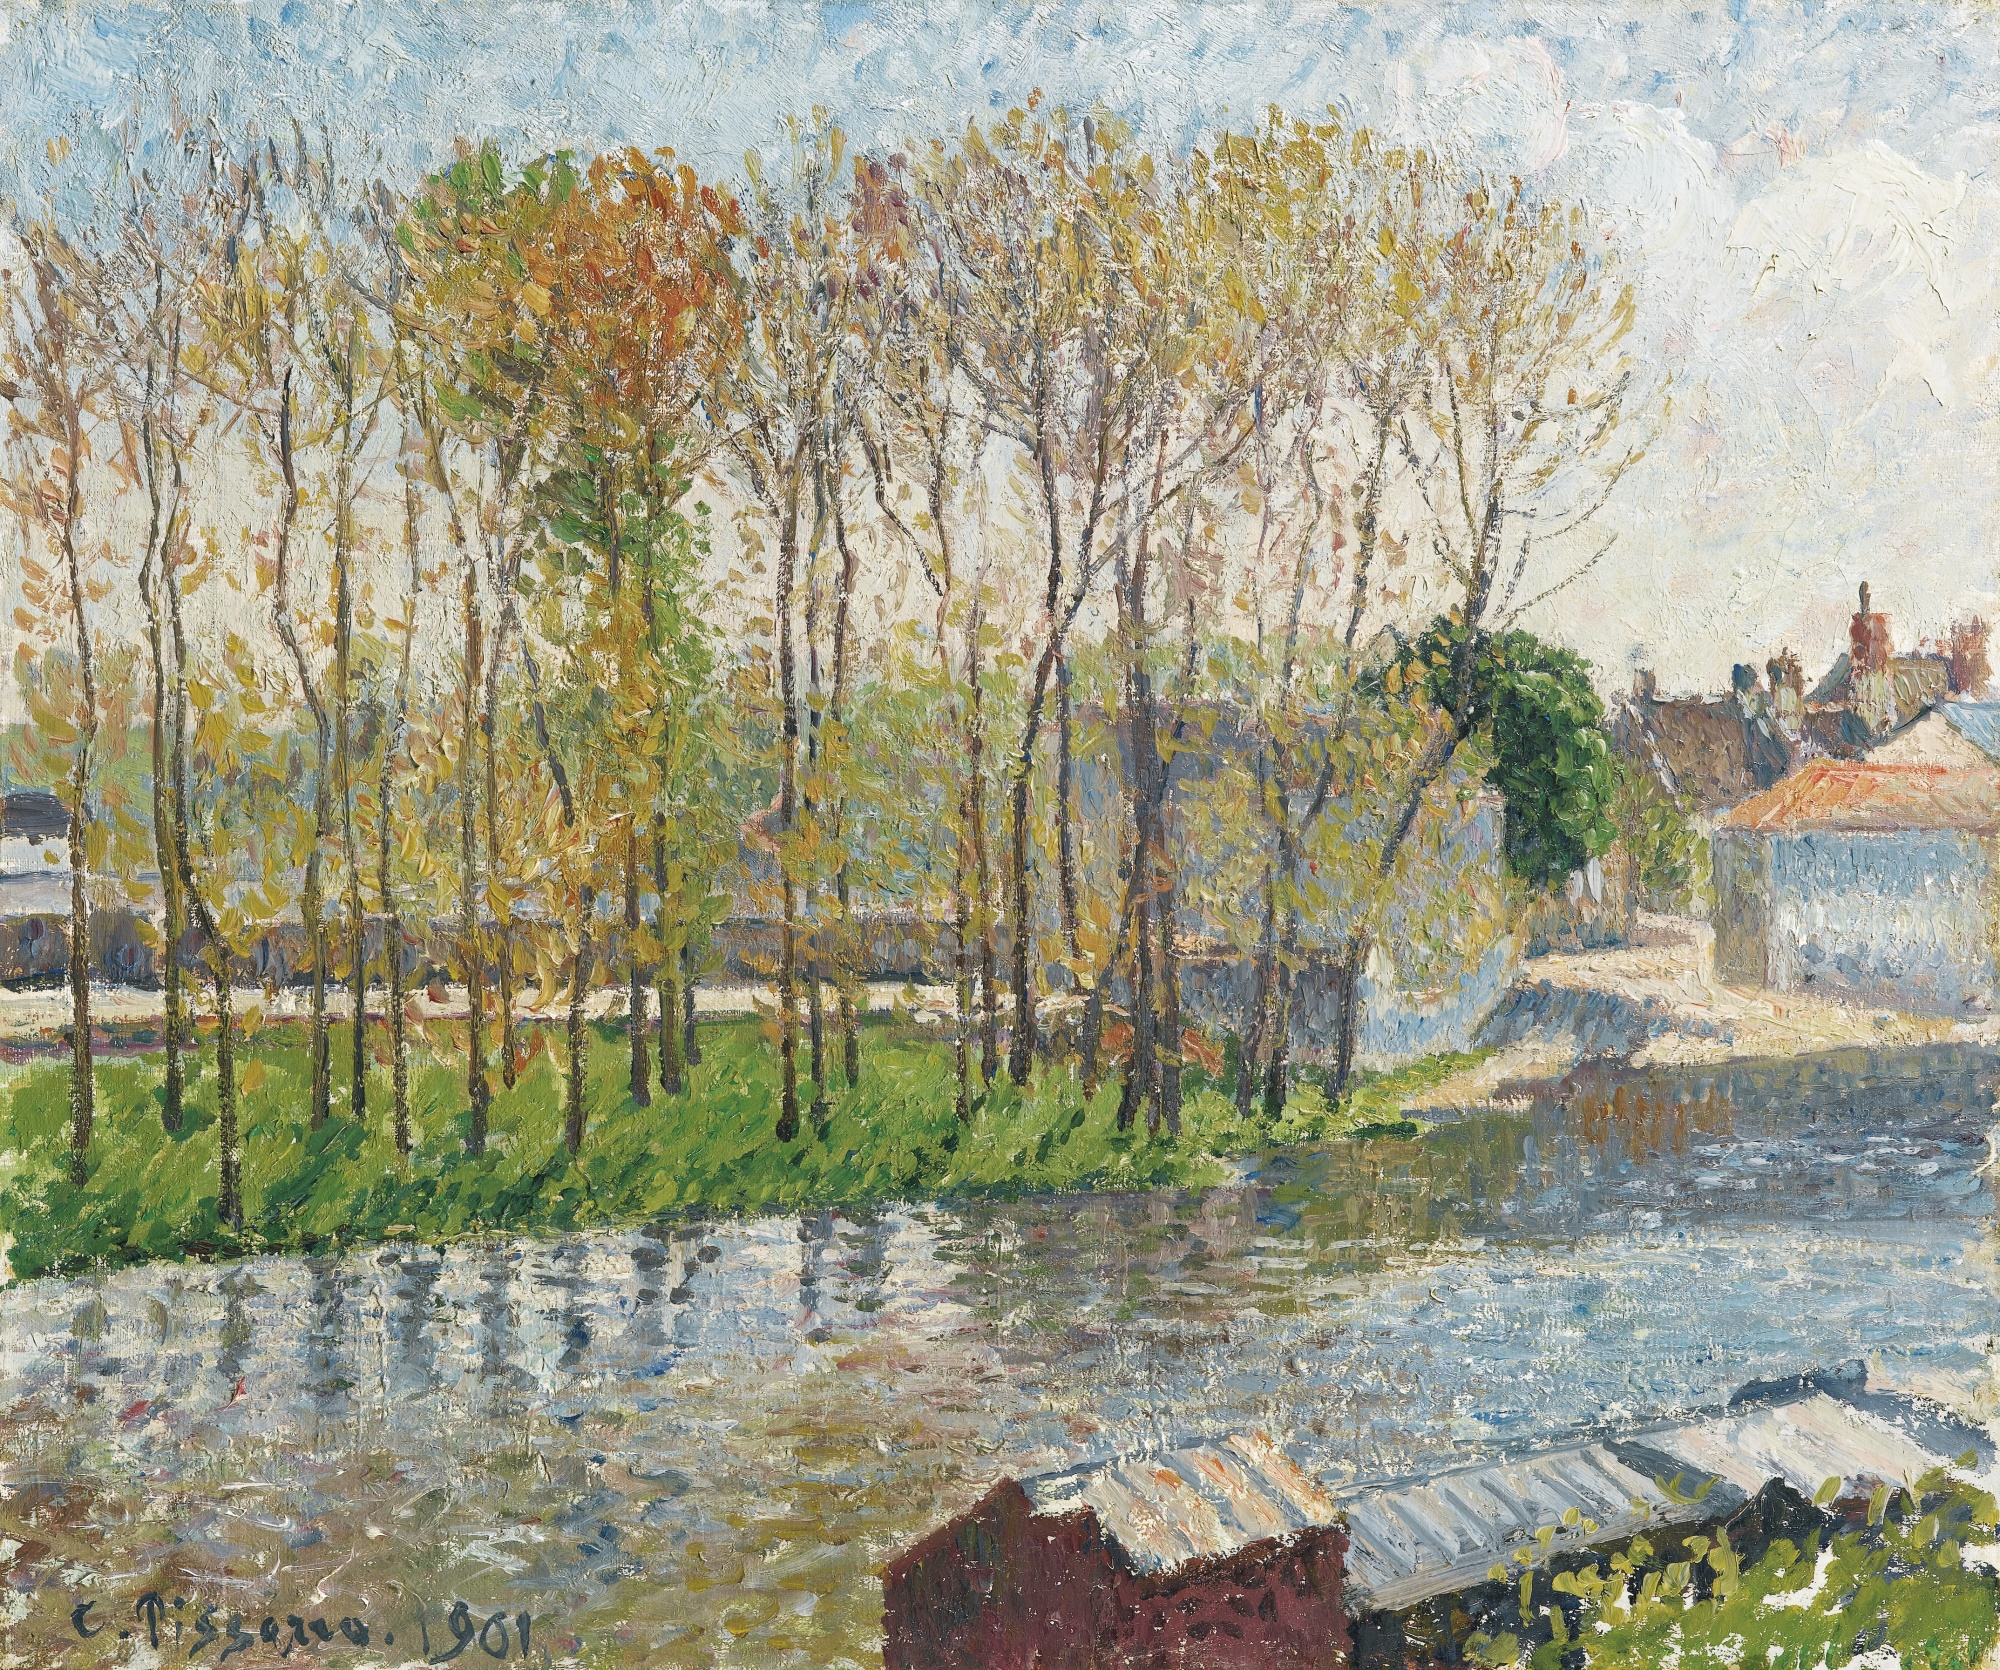 Camille Pissarro: THIS WEEKEND IN NEW